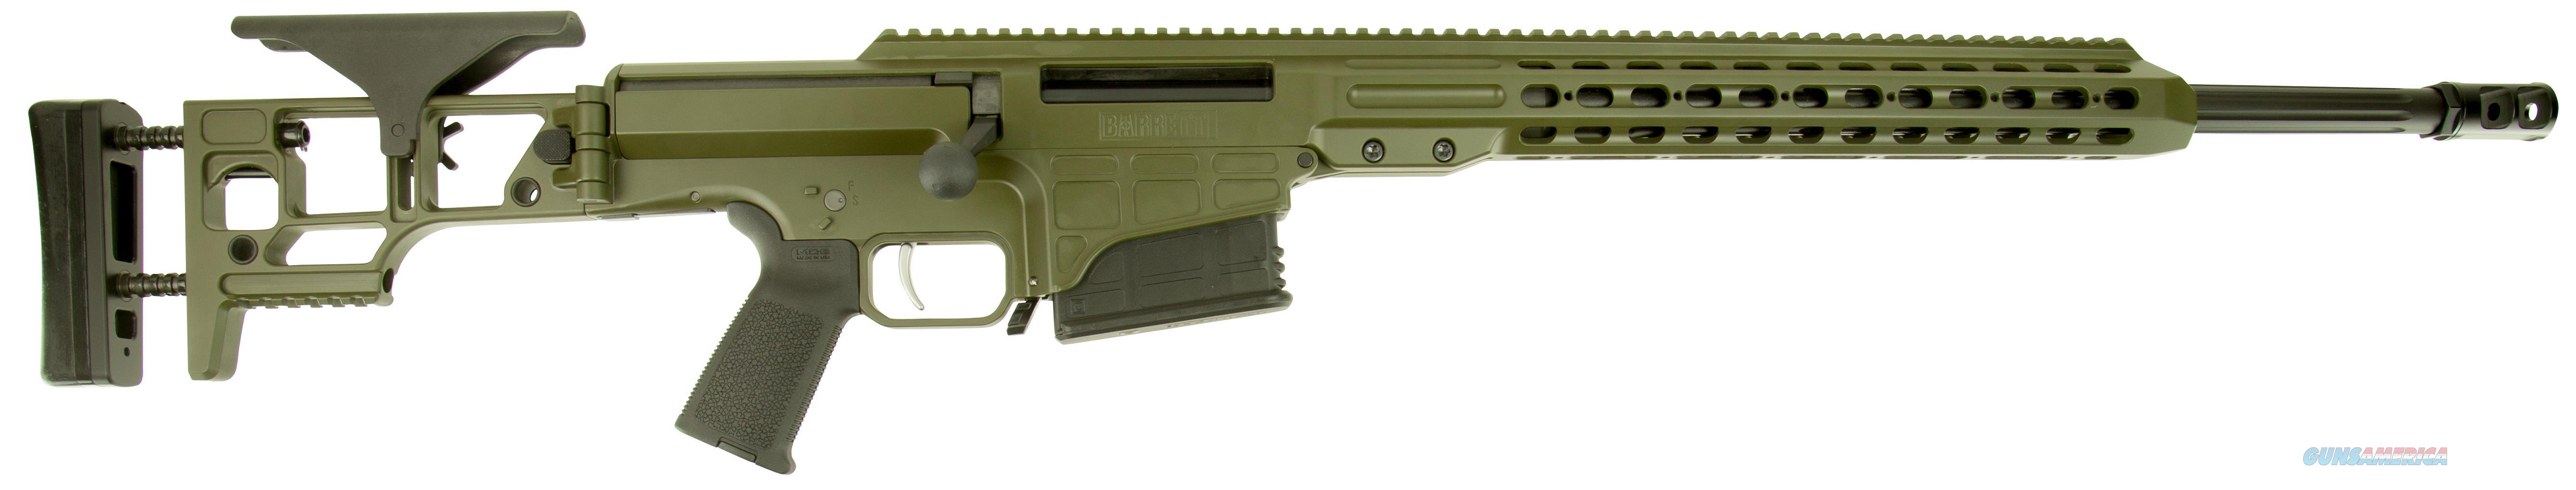 "Barrett 14367 Mrad Bolt 308 Winchester 22"" 10+1 Folding Od Green Stk Od Green/Blk 14367  Guns > Rifles > Barrett Rifles"